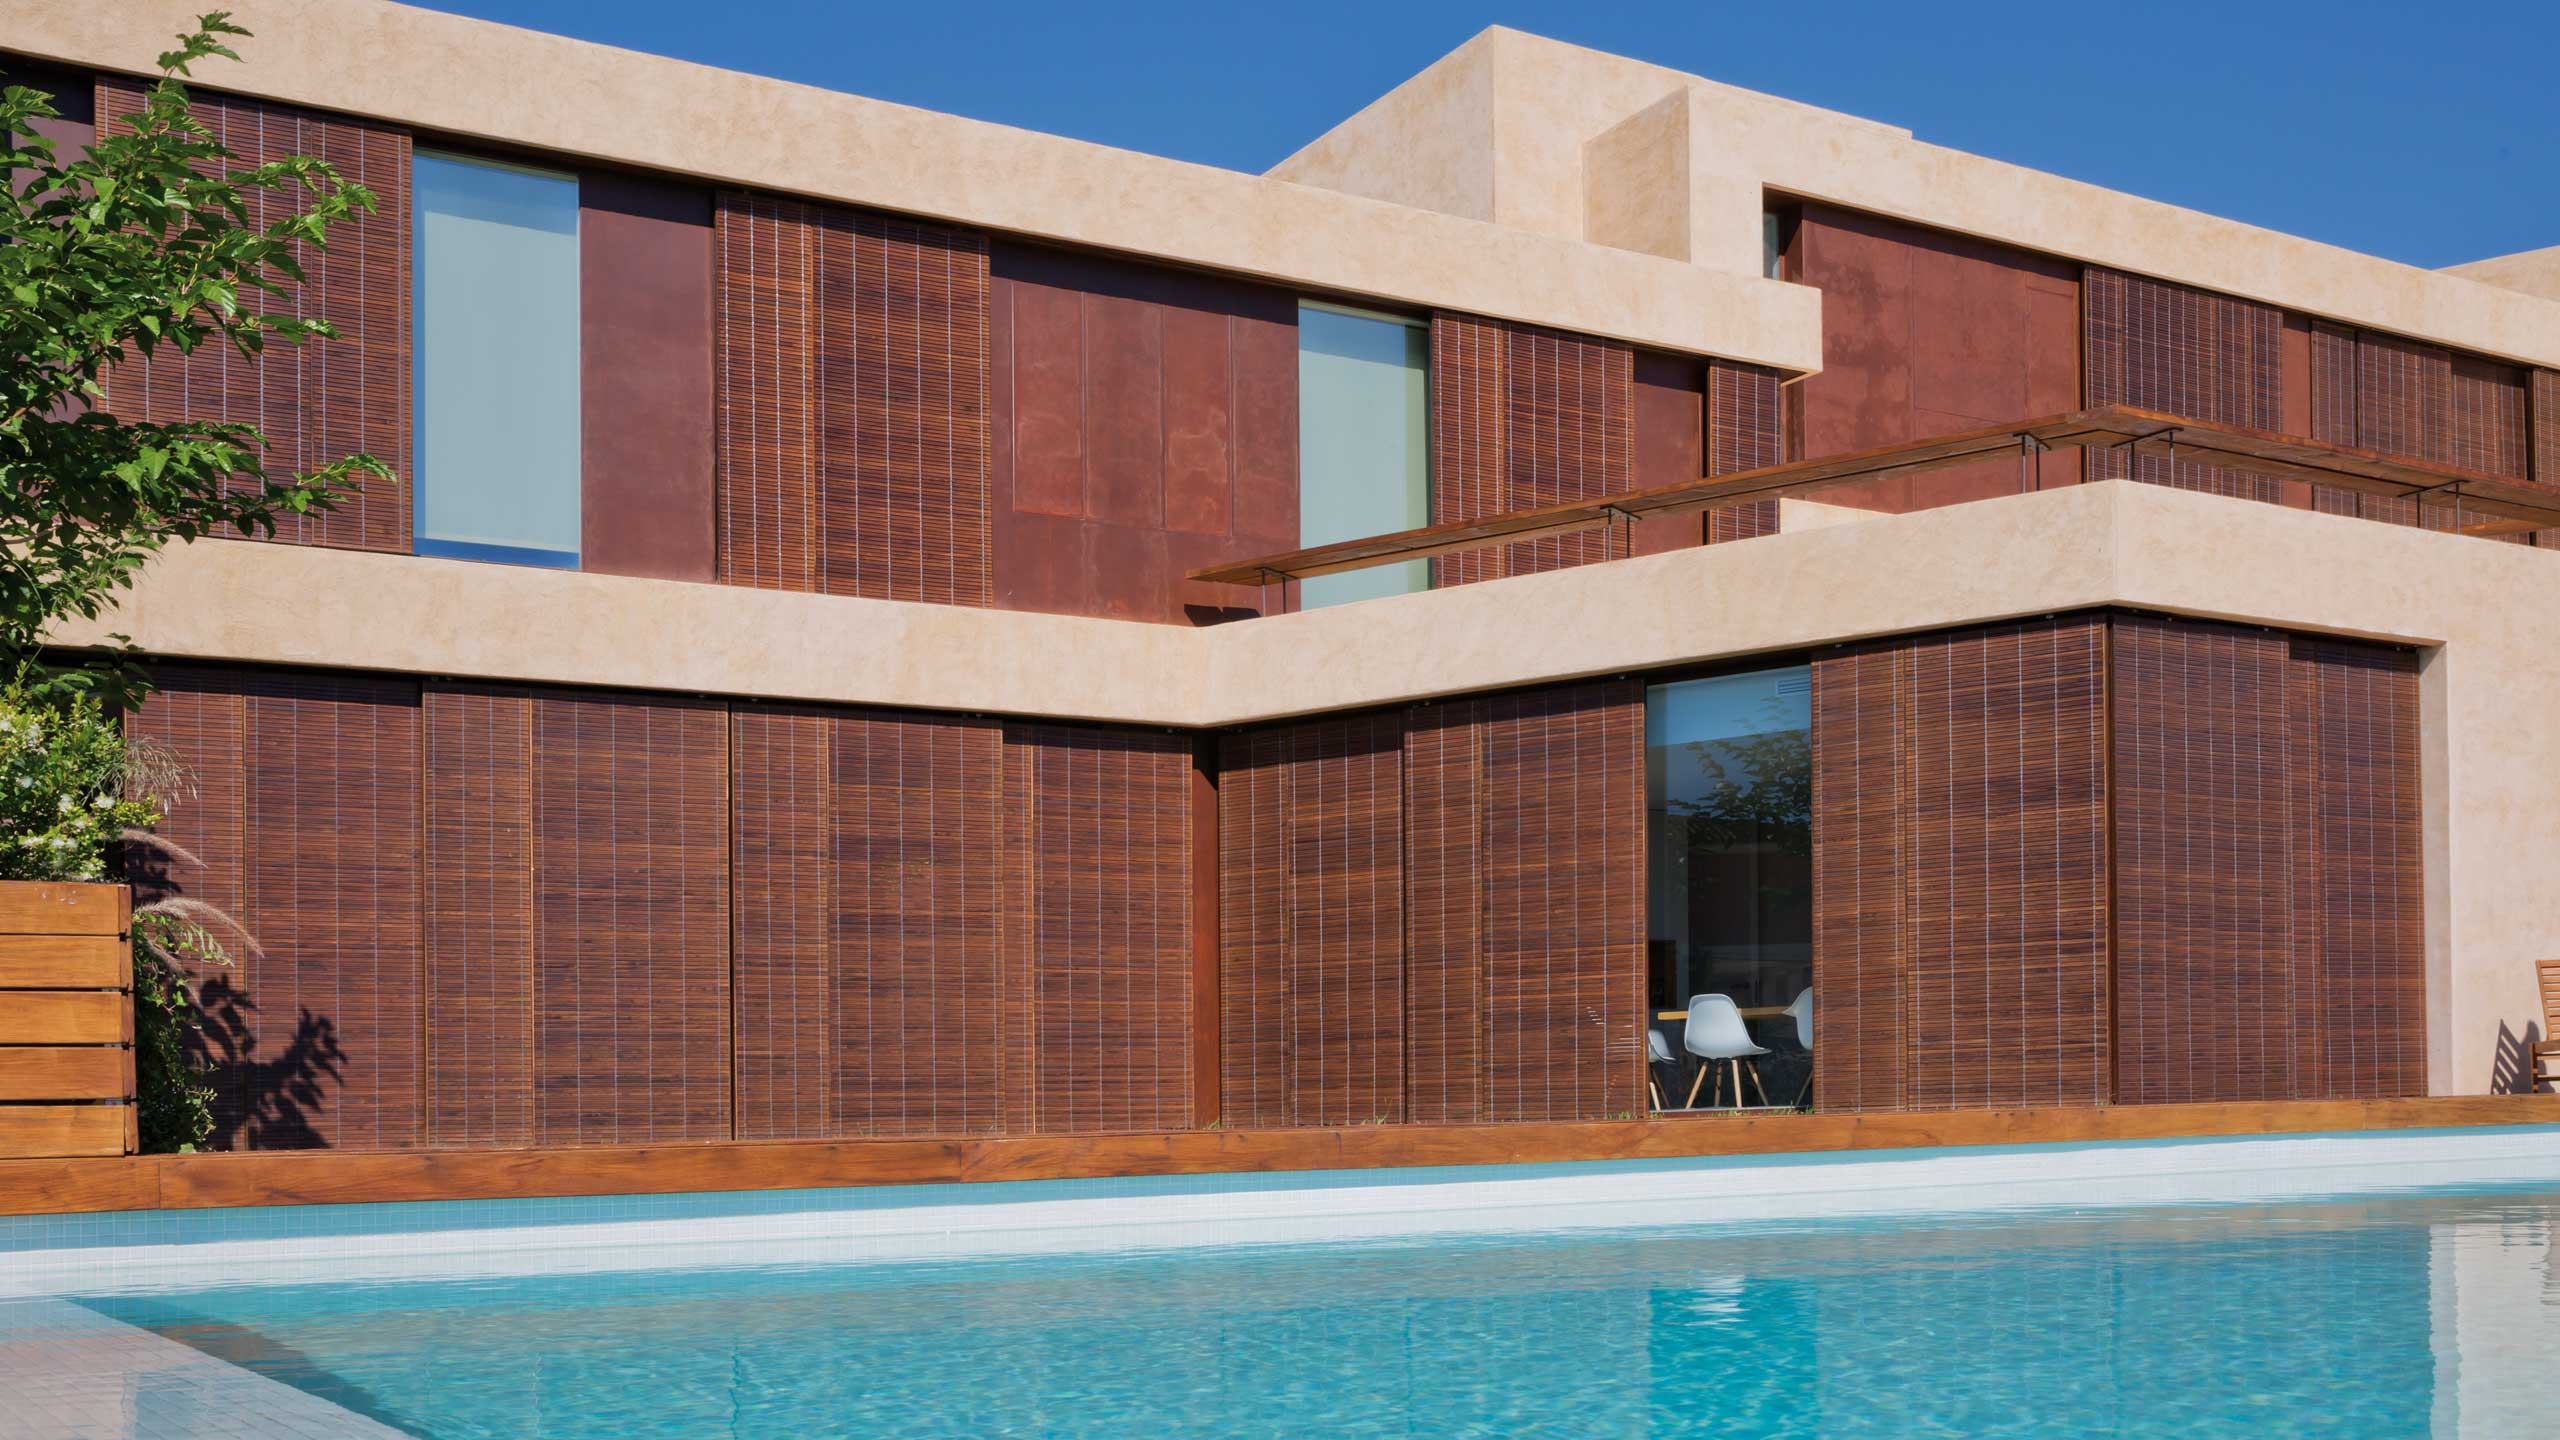 Alicantina shutters in modern architecture